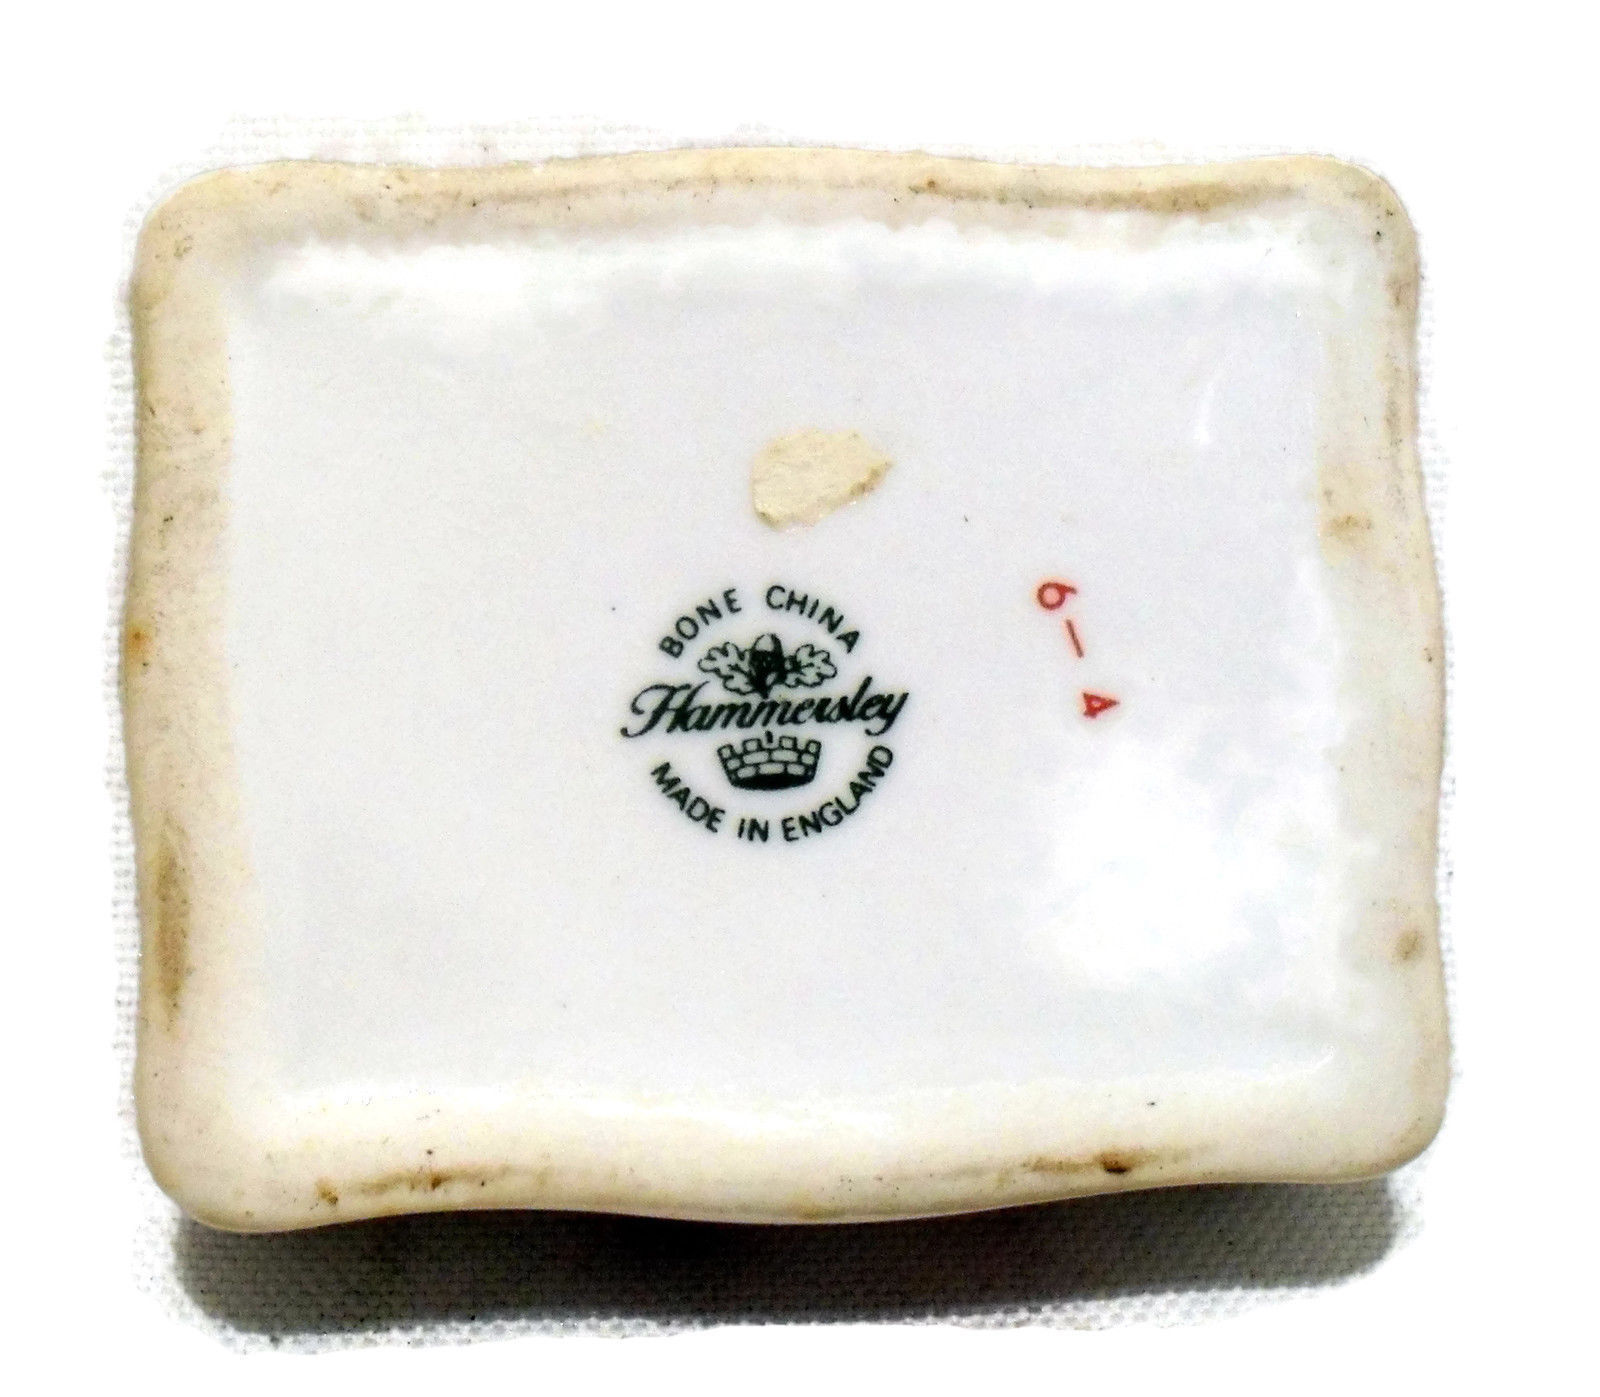 Hammersley Vintage Bone China Trinket Box made in England